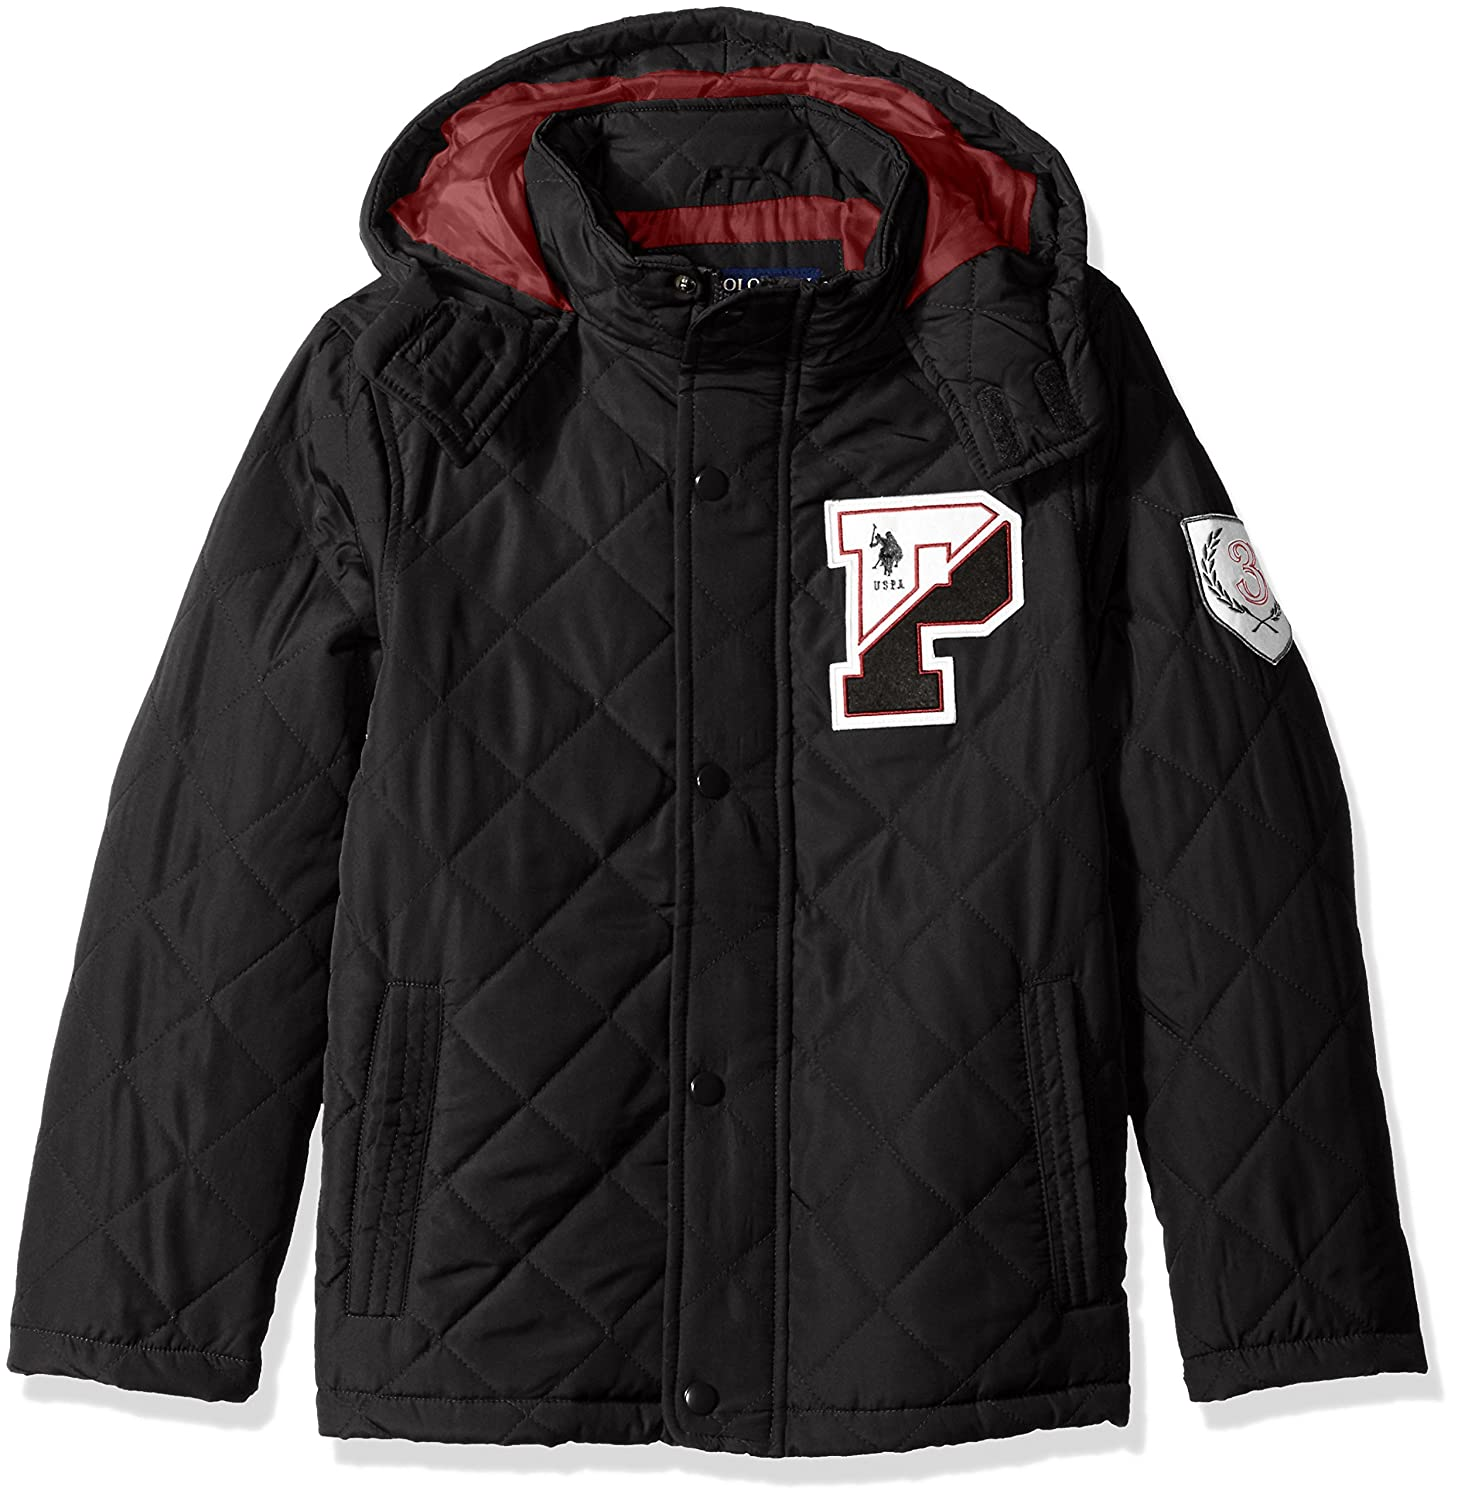 U.S. Polo Assn Boys' Outerwear Jacket (More Styles Available)